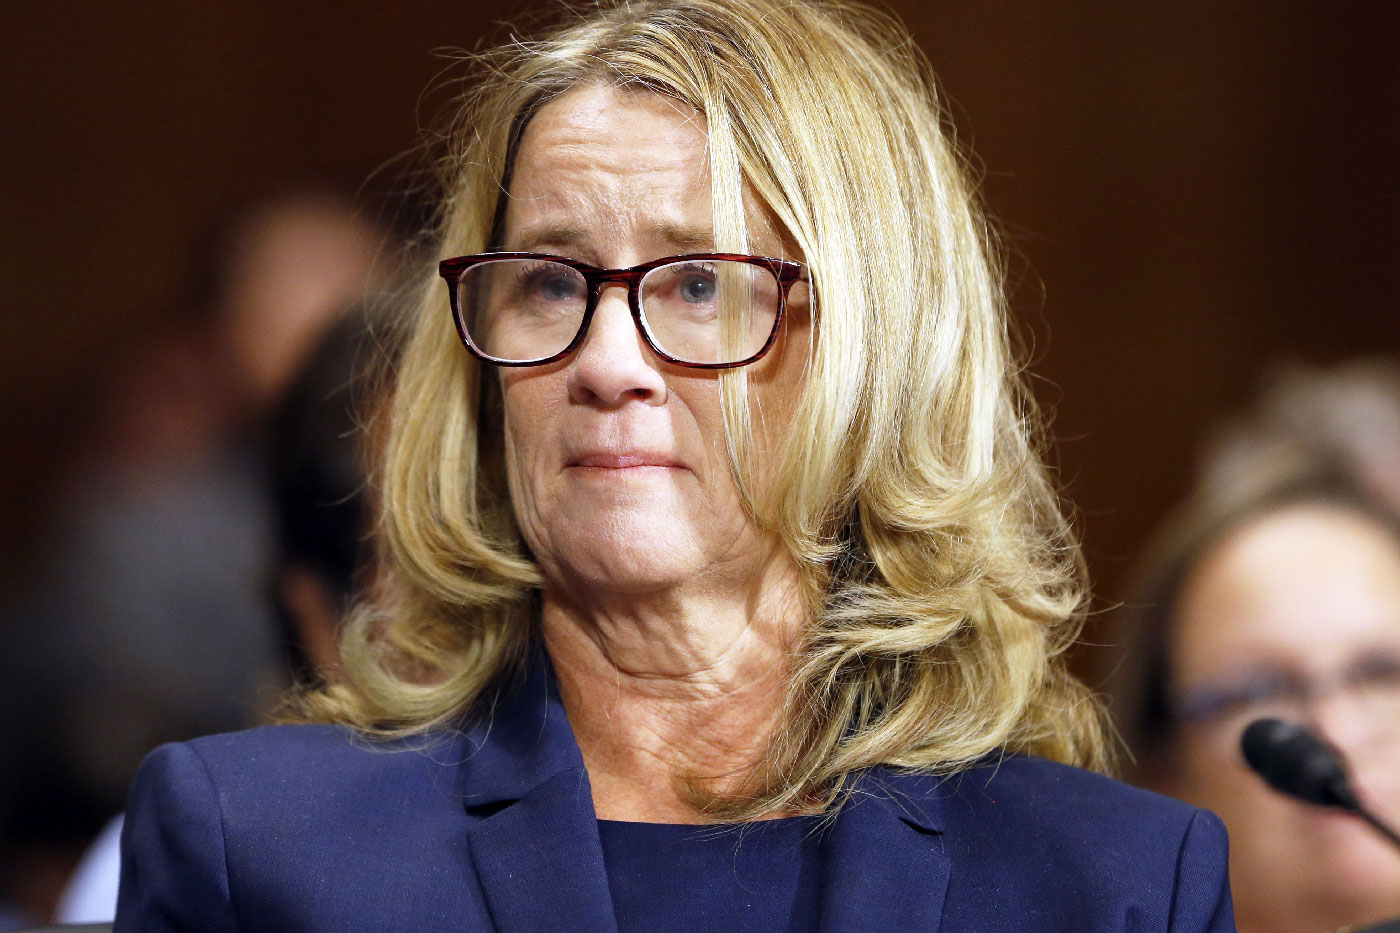 4d4ac7ec09 christine-blasey-ford-brett-kavanaugh-hearings-sexual-assault-opinion-comment.jpg